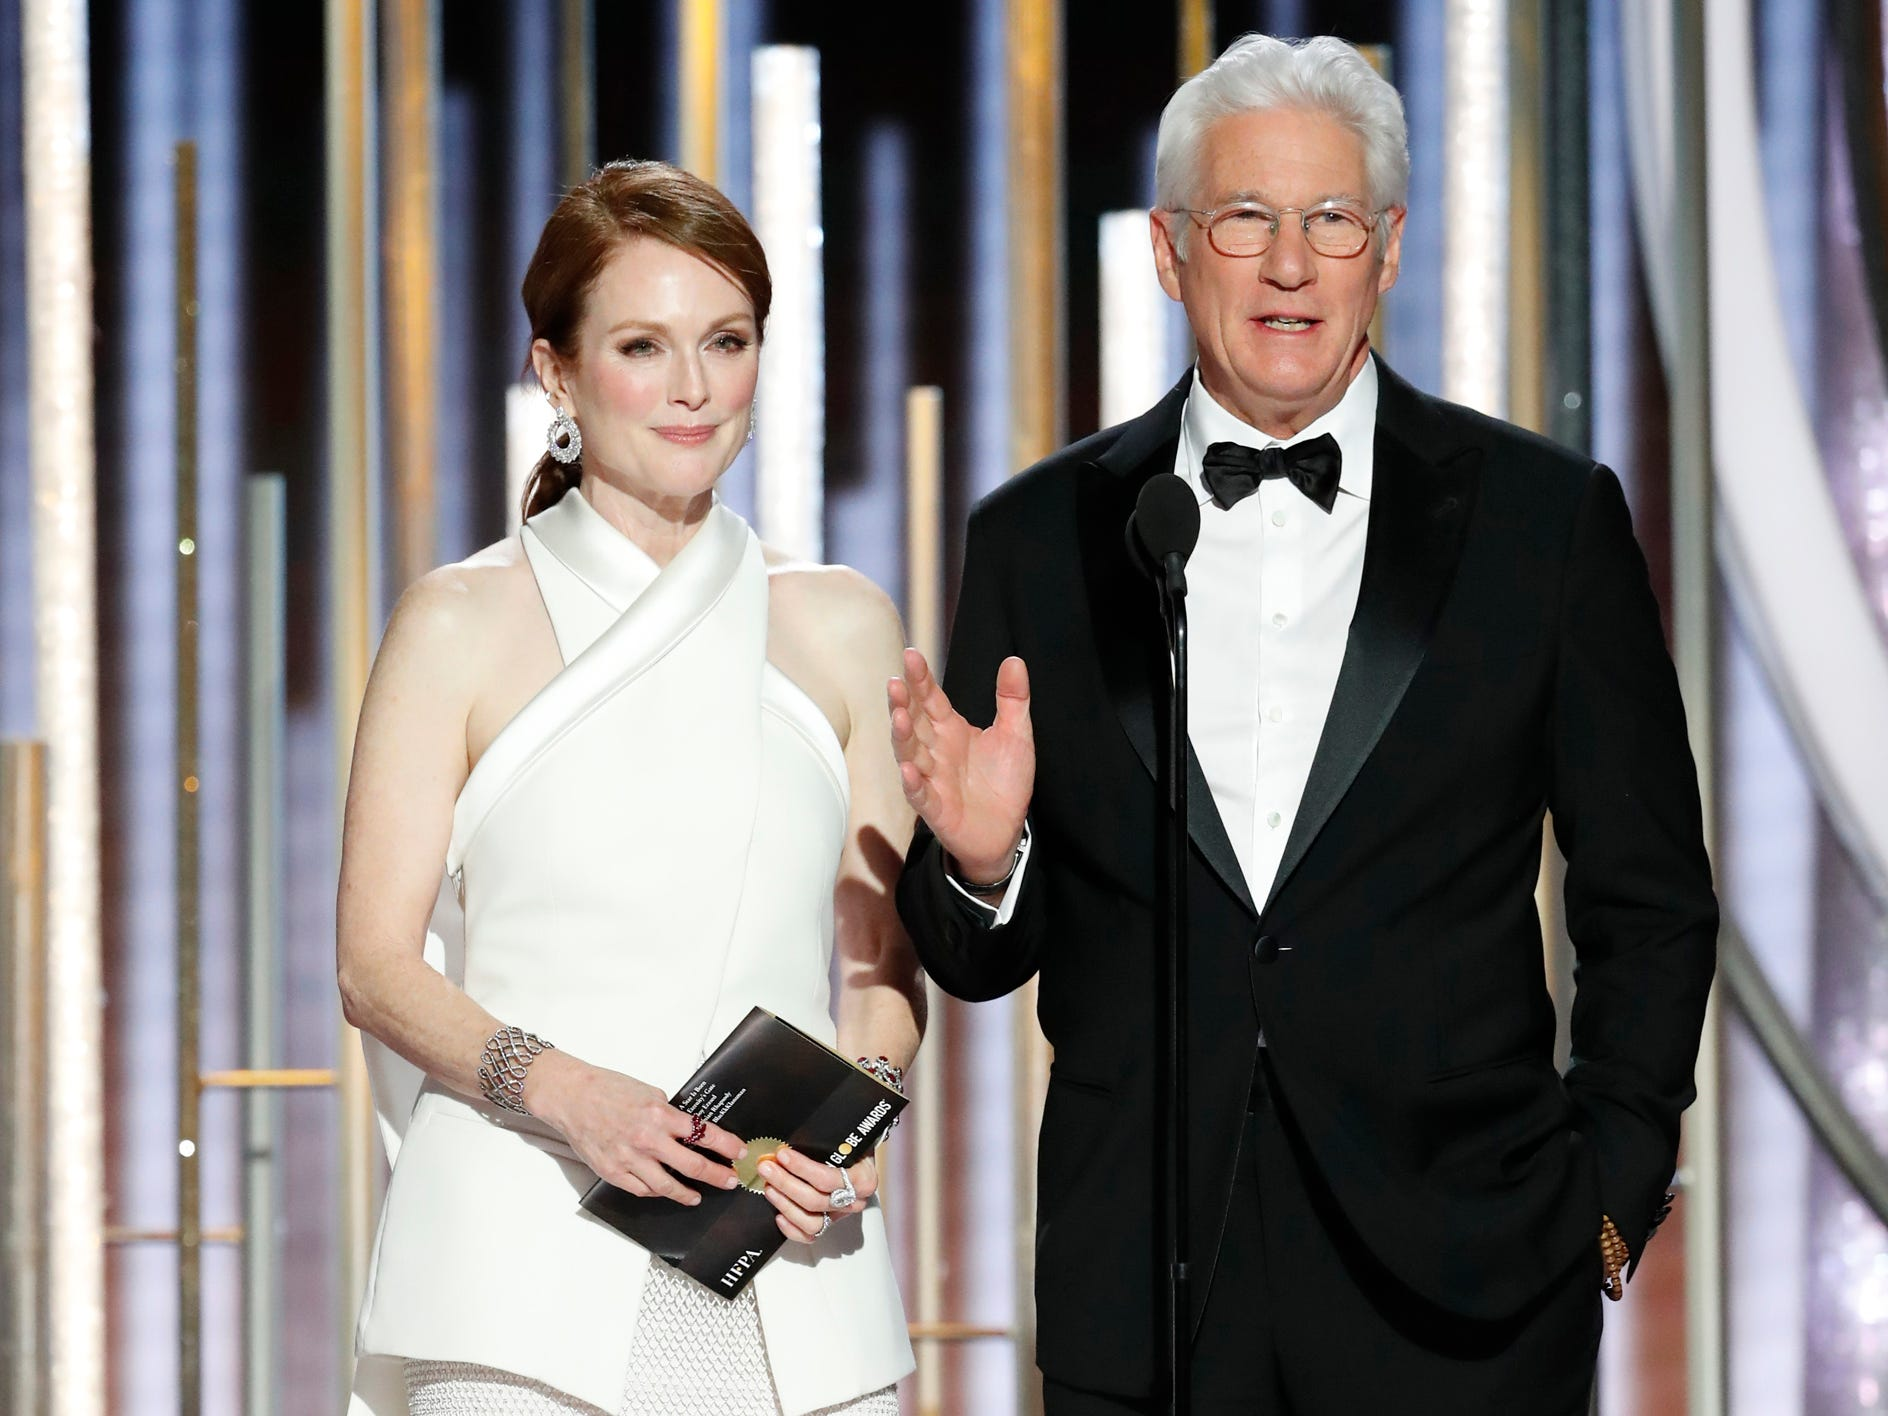 Julianne Moore and Richard Gere during the 76th Golden Globe Awards.